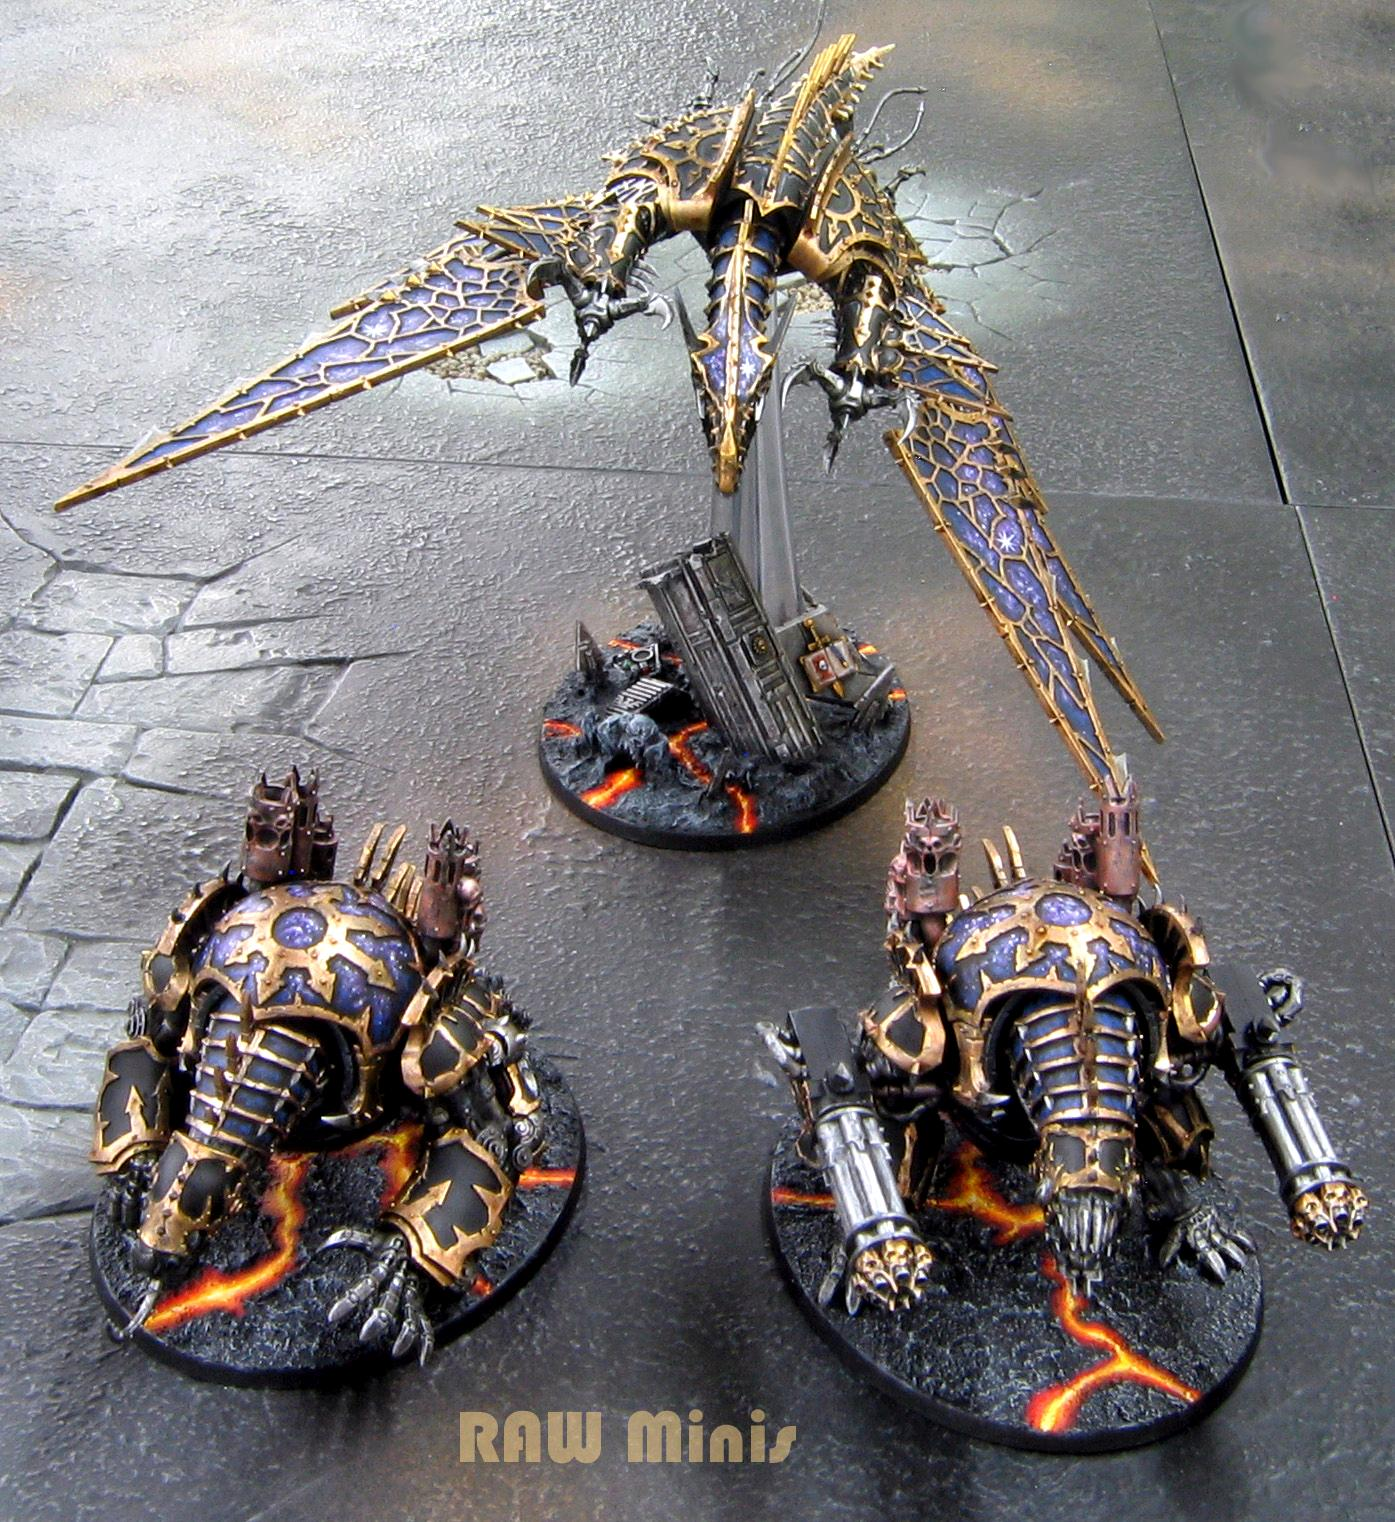 Chaos Daemons, Chaos Space Marines, Daemons, Painting, Vehicle, Warhammer 40,000